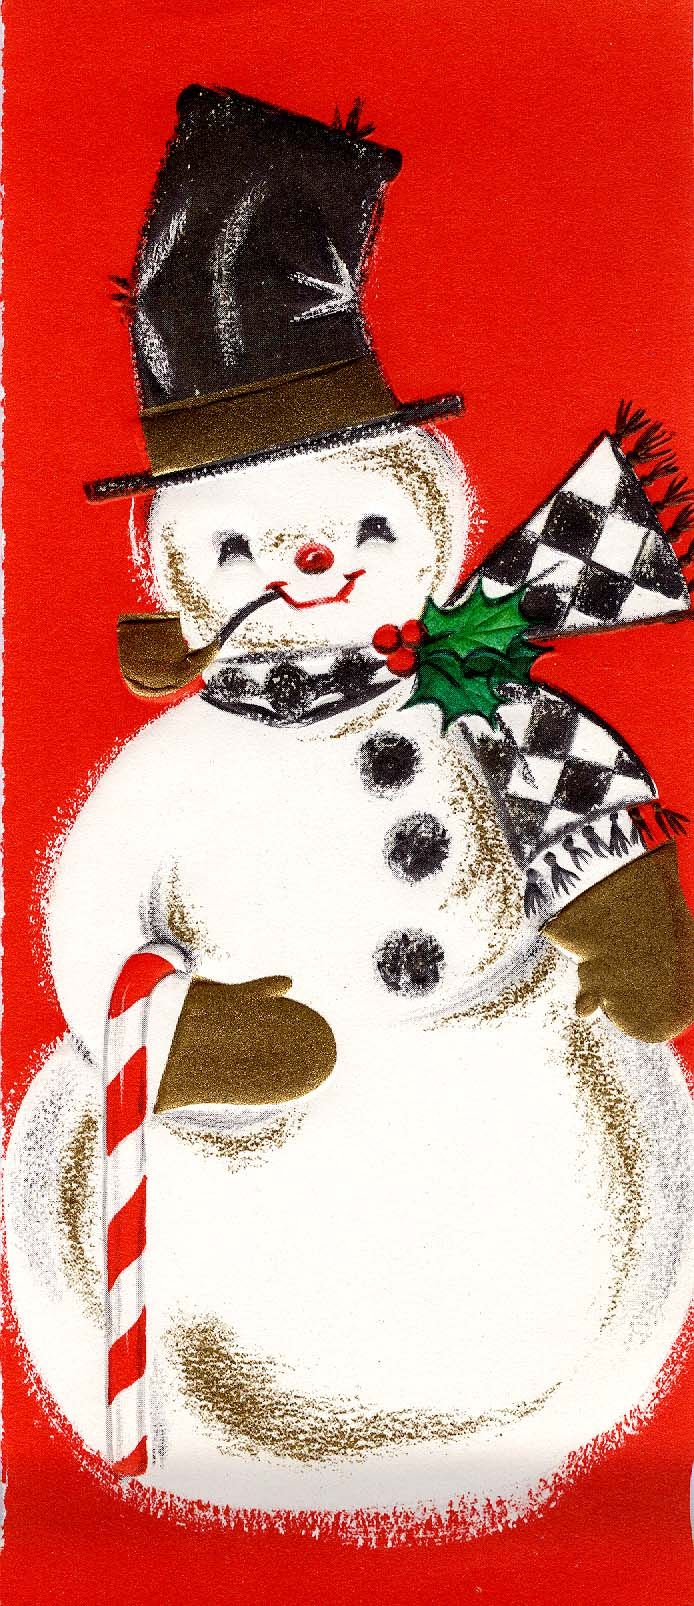 Christmas vintage greeting card with snowman